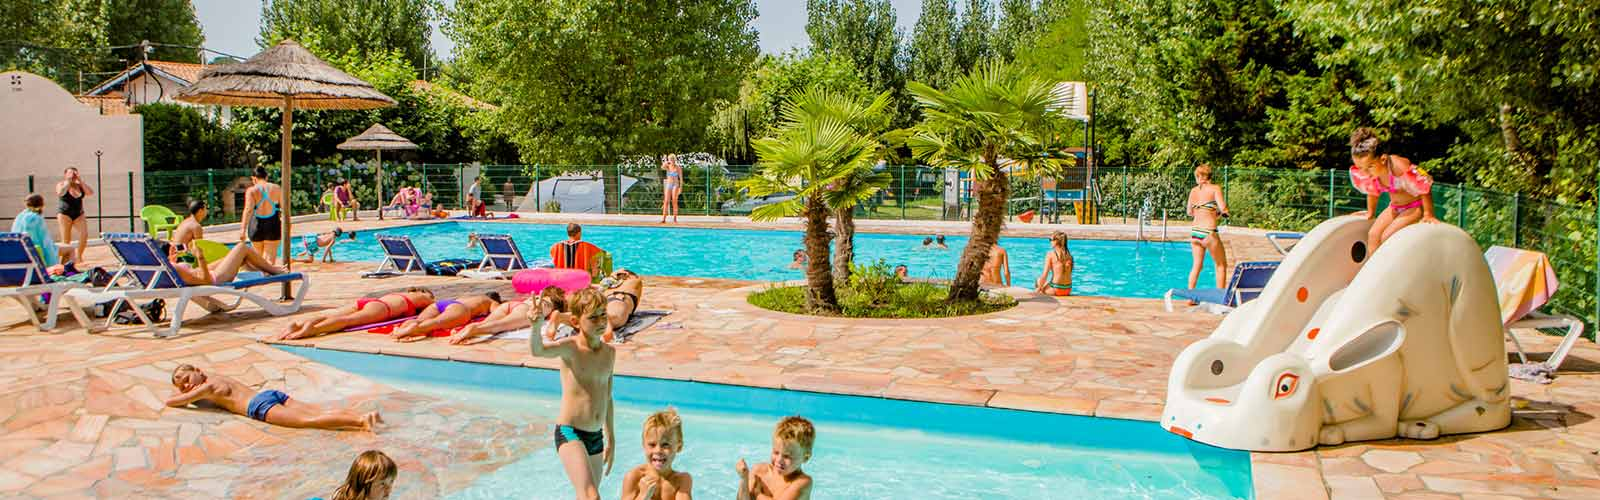 Camping pays basque avec piscine bord de mer espace for Camping chambery avec piscine